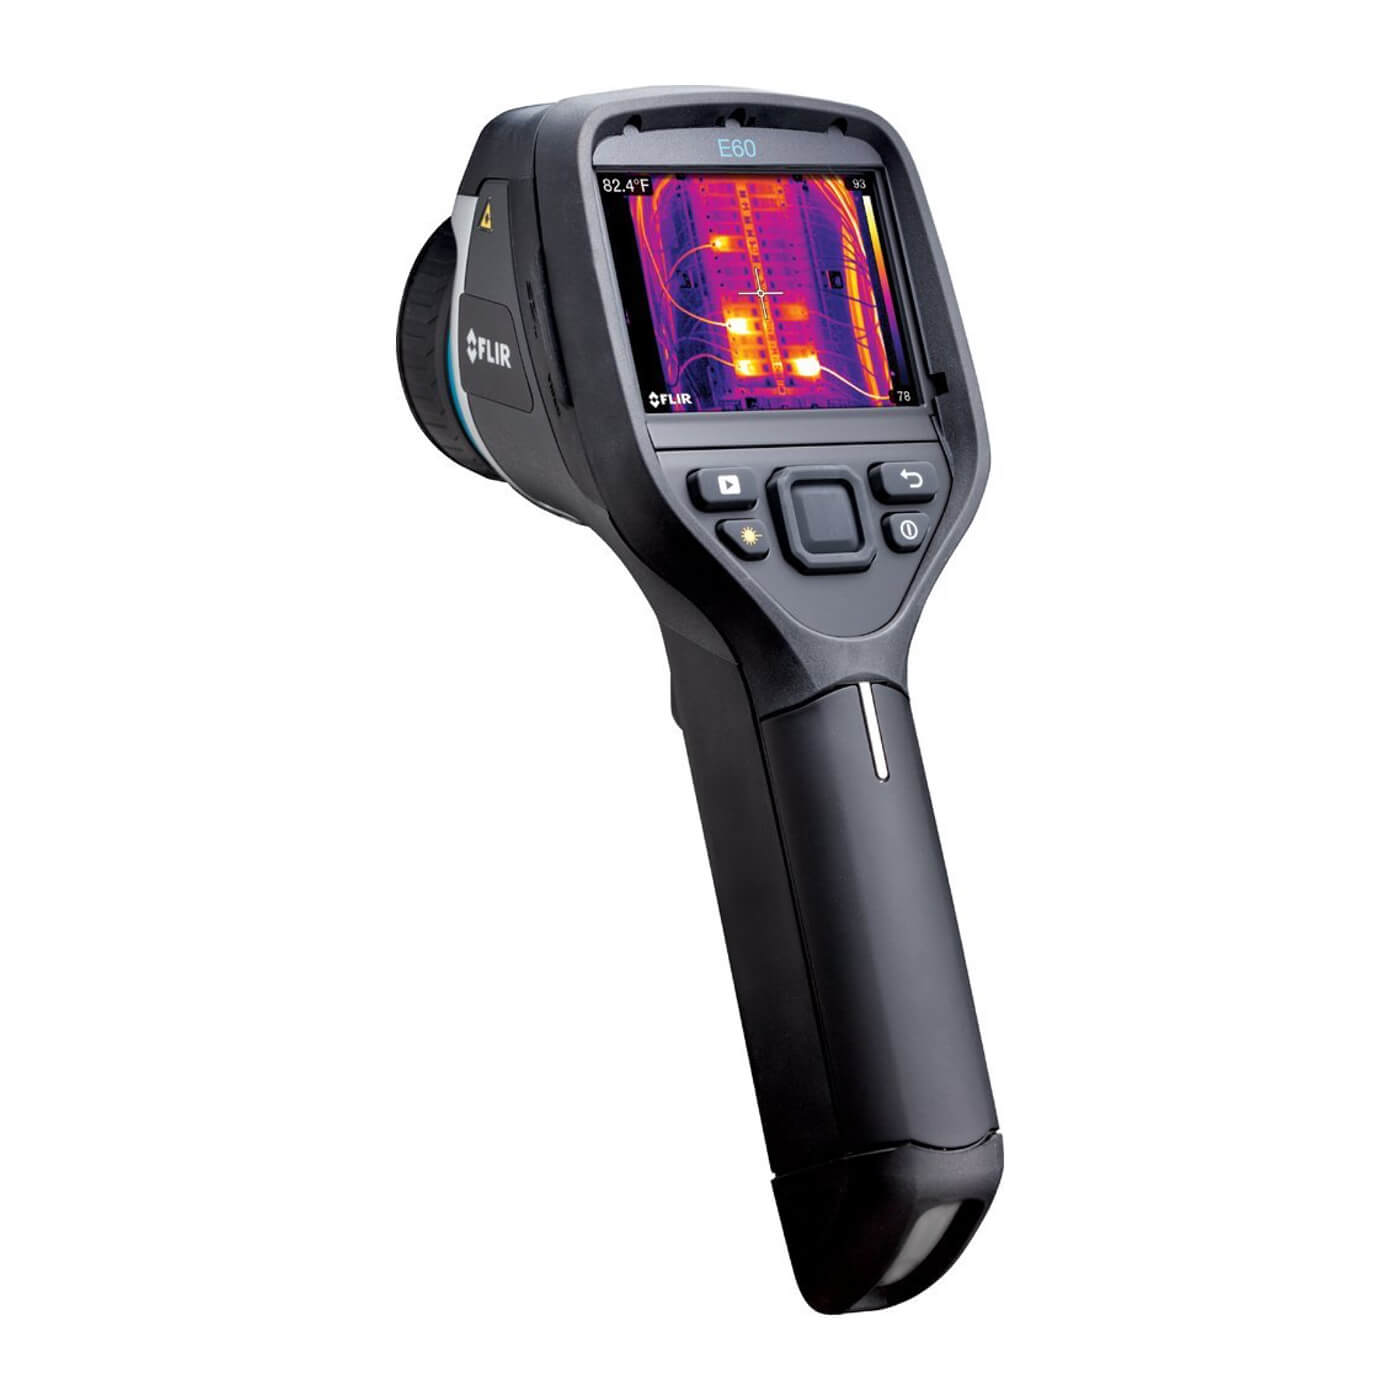 Flir e60 thermal imager